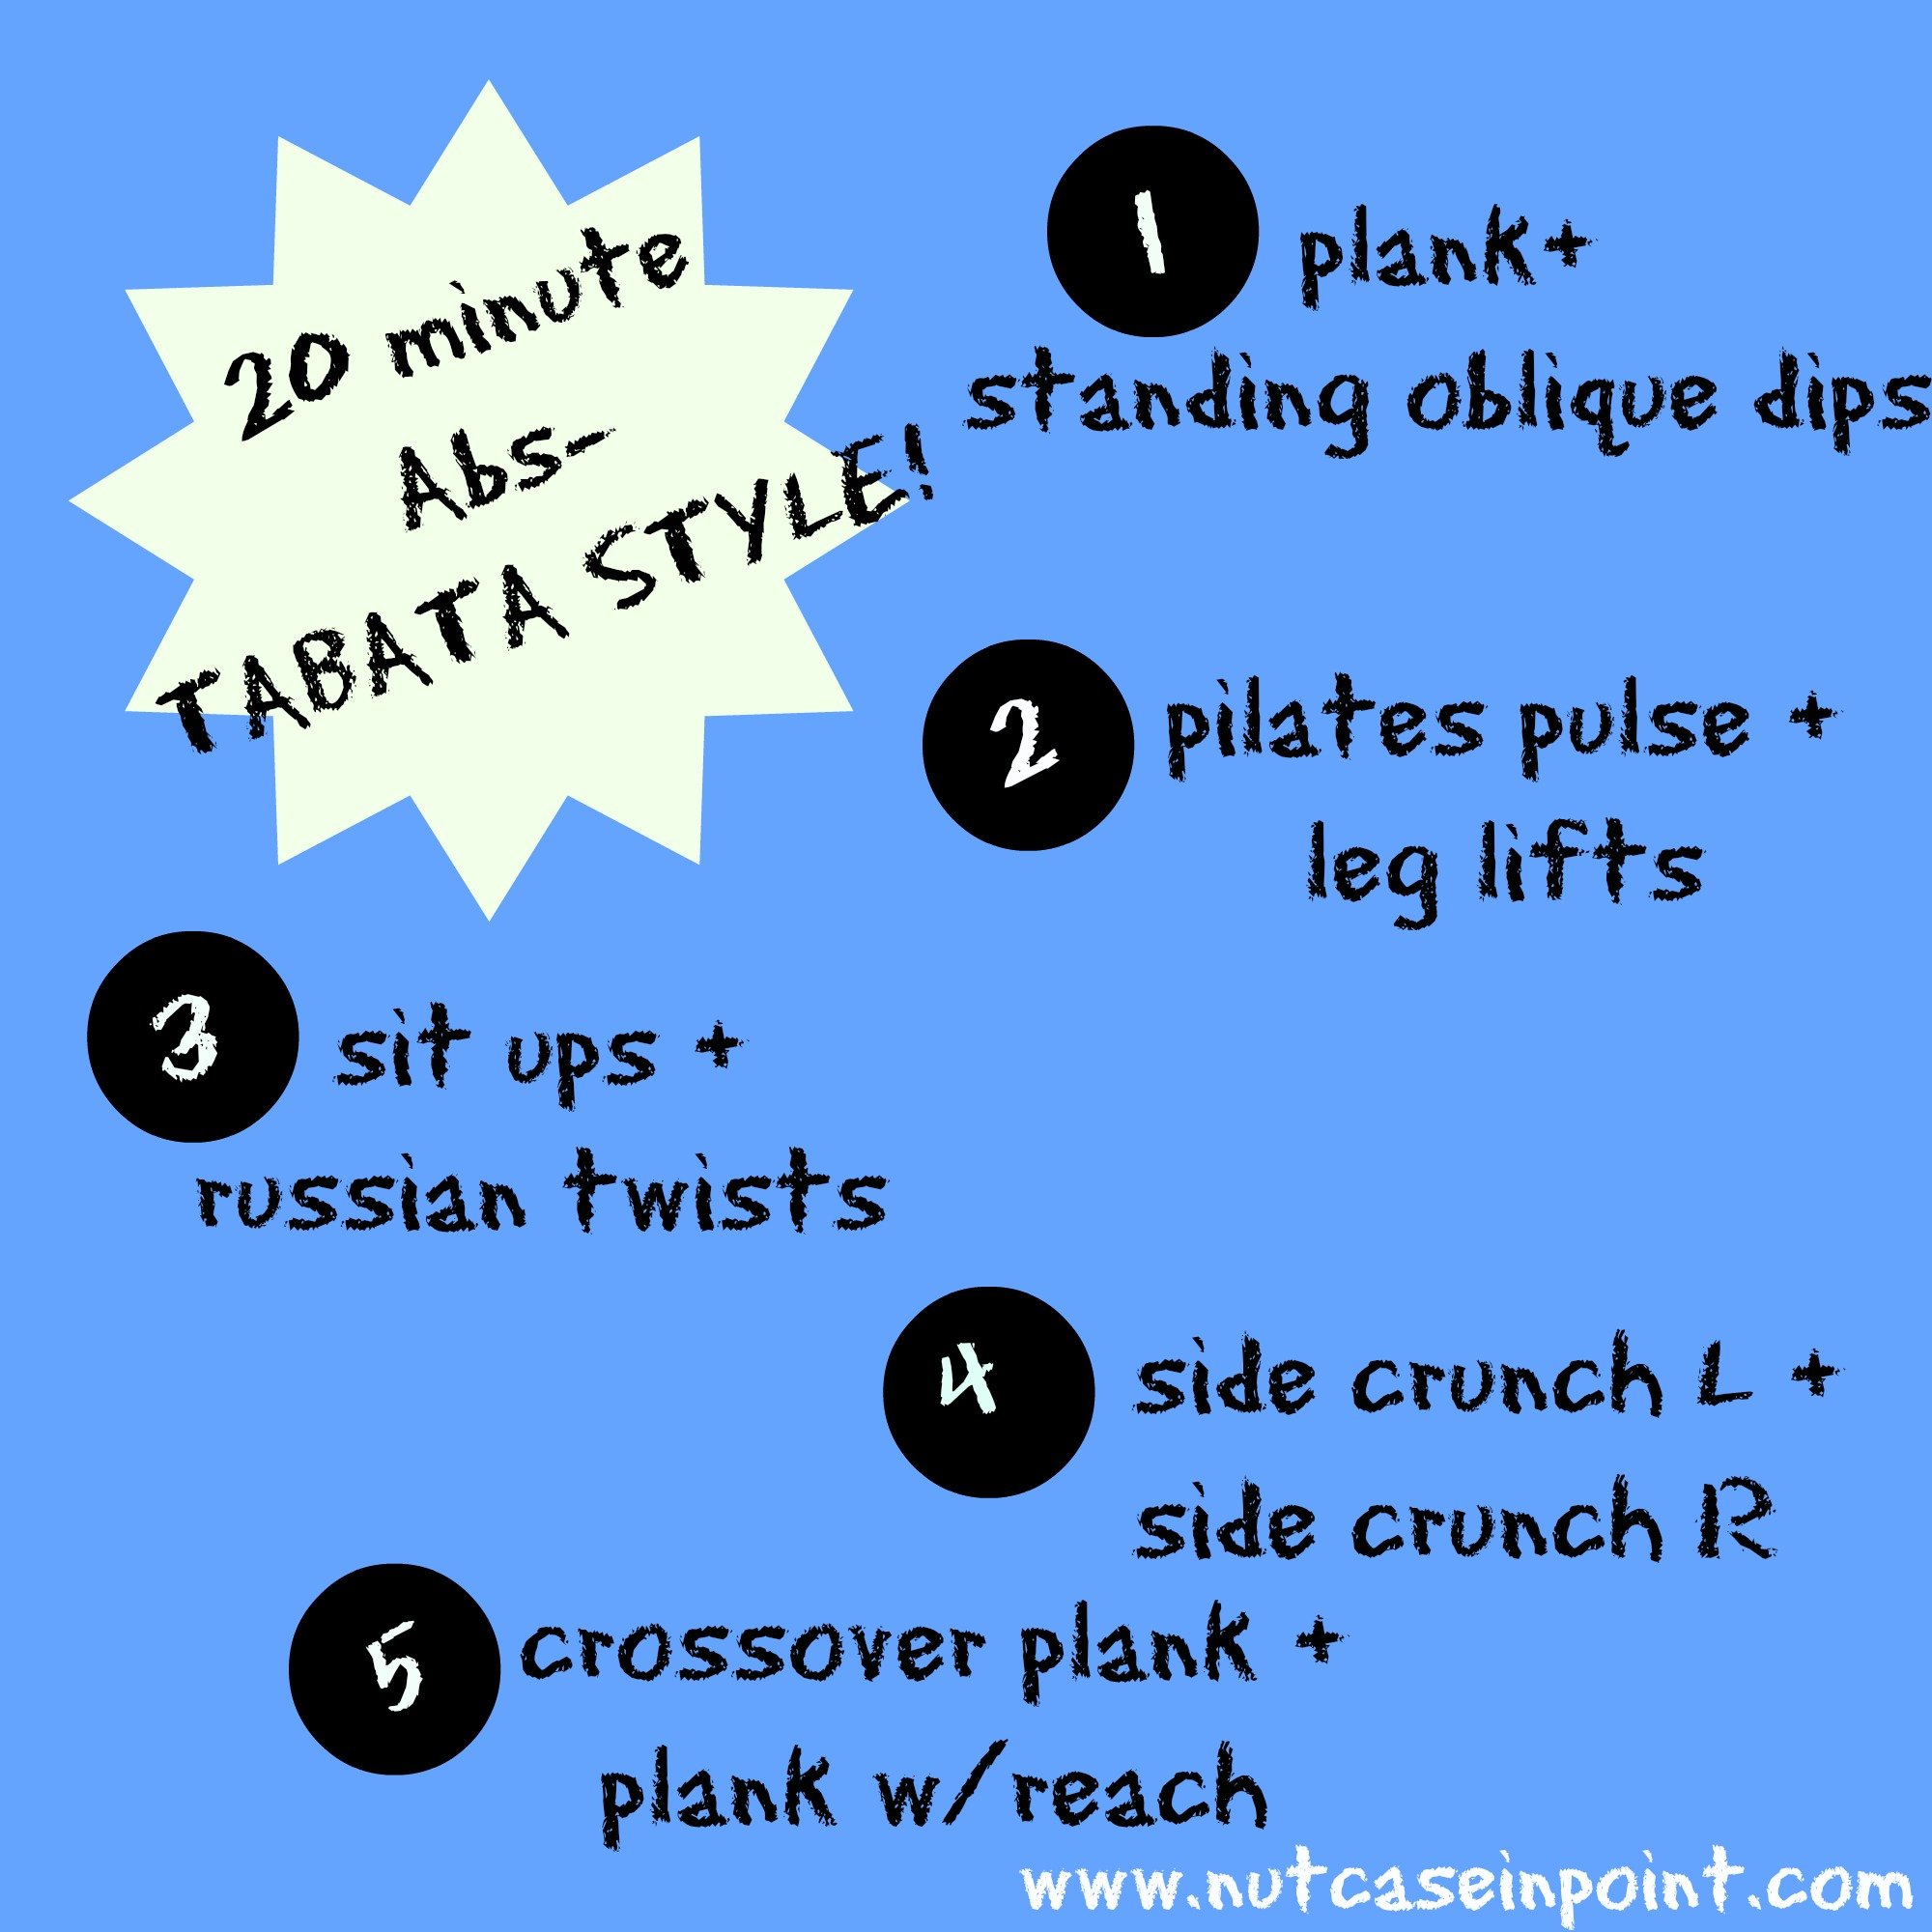 No-Weight Workout + Tabata Abs! | nutcaseinpoint